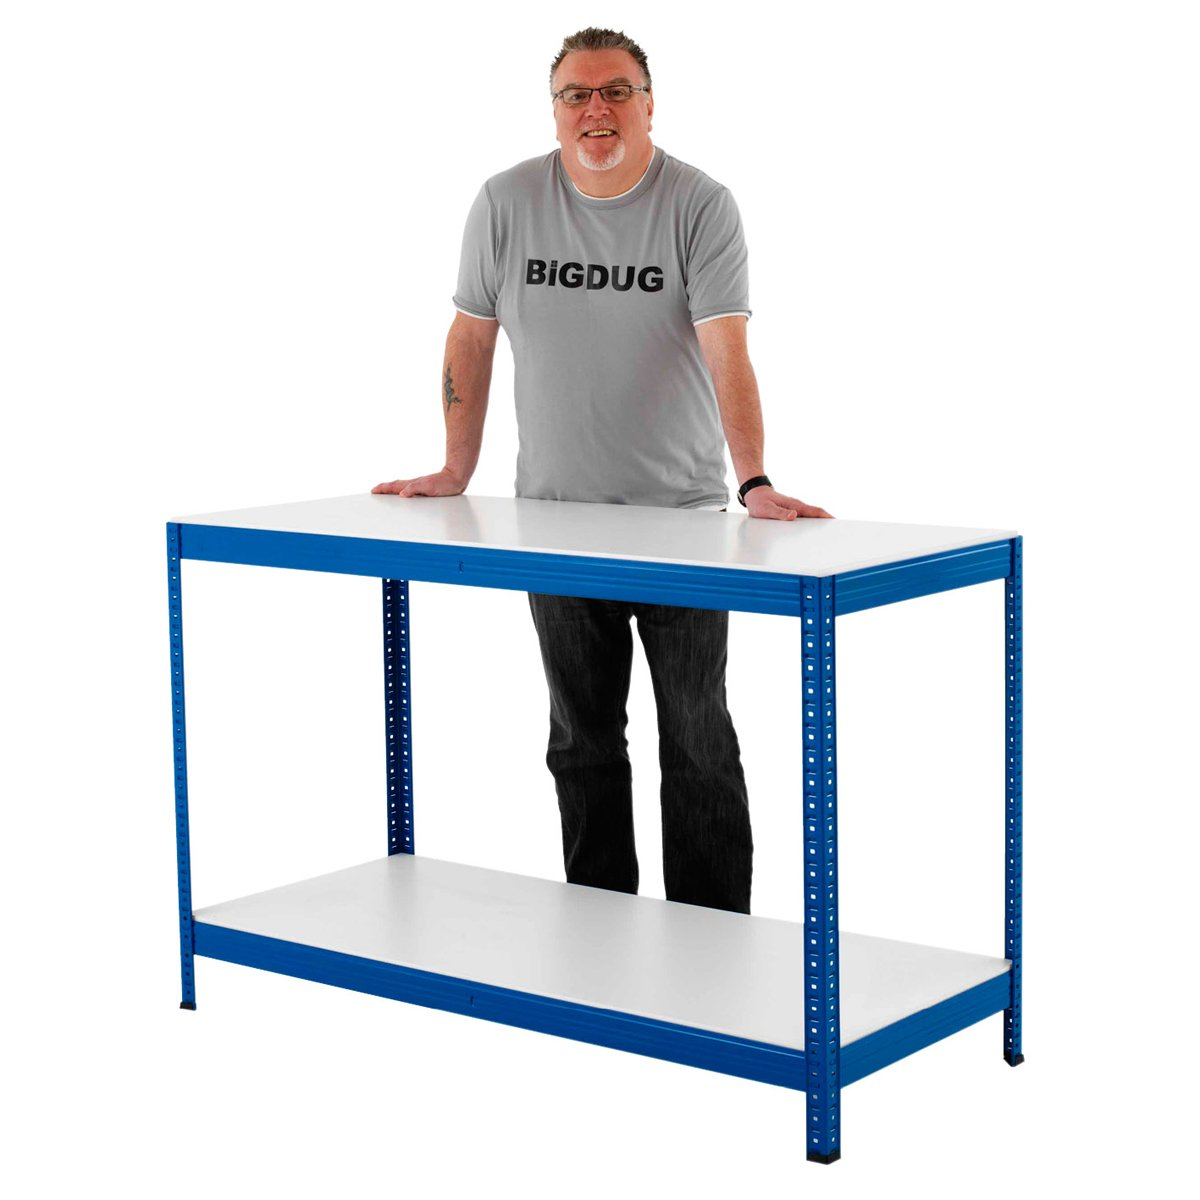 Industrial Steel Workbench Table Shelving With 2 Shelves Melamine Or Chipboard/2 Widths (1800mm Wide Melamine Shelves)       review and more news